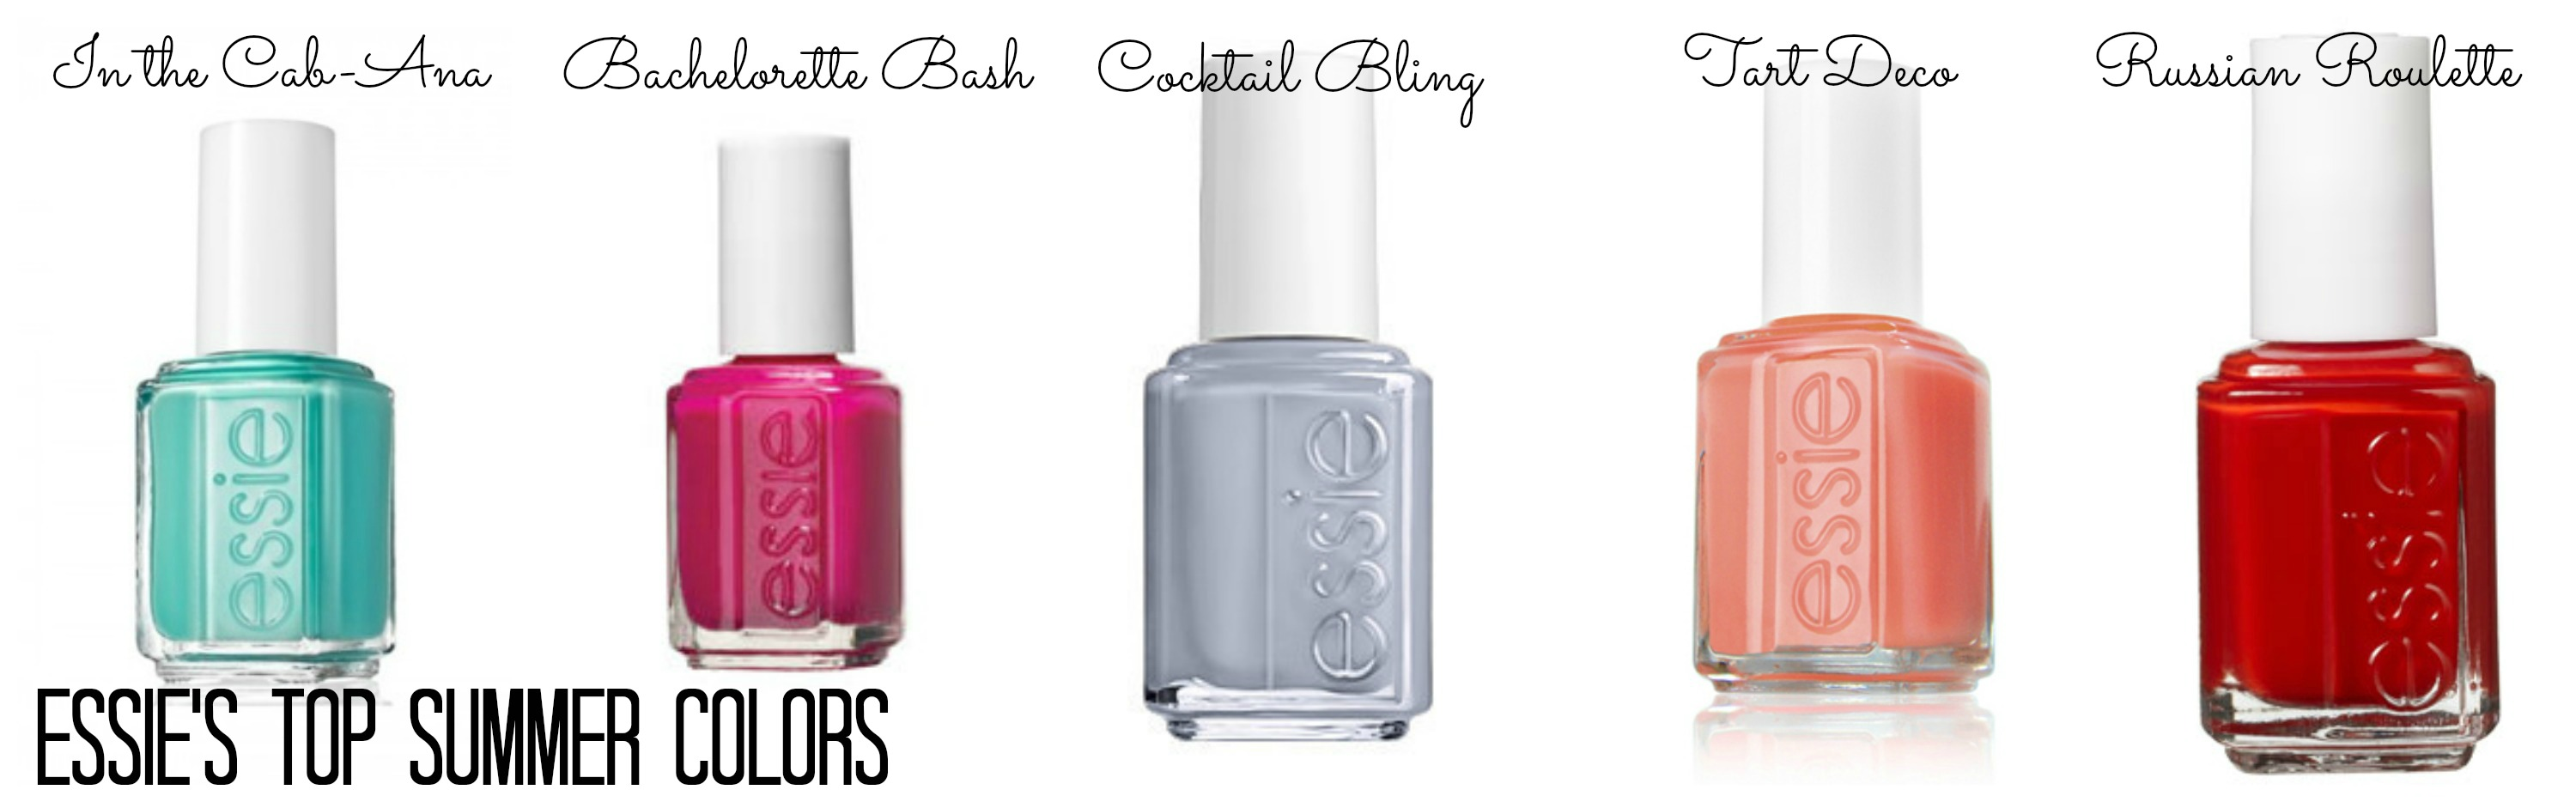 Five Favorite Summer Nail Colors: Essie Style - To The Heights